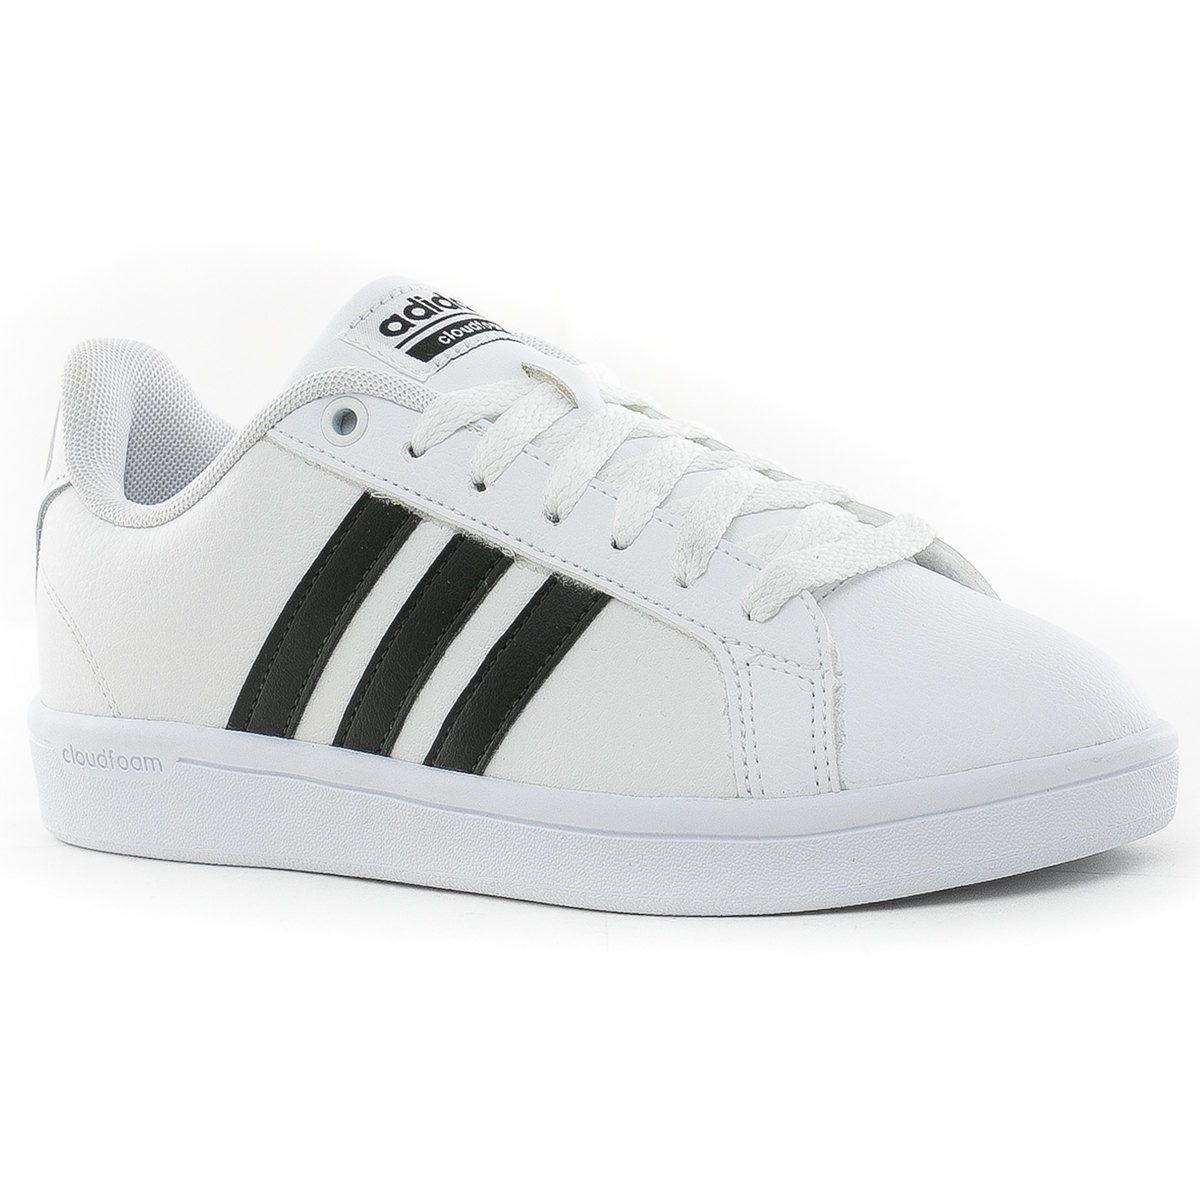 Adidas Blanco Zapatillas Zapatillas Advantage Adidas Blanco Cloudfoam Cloudfoam Advantage Yfy76bg